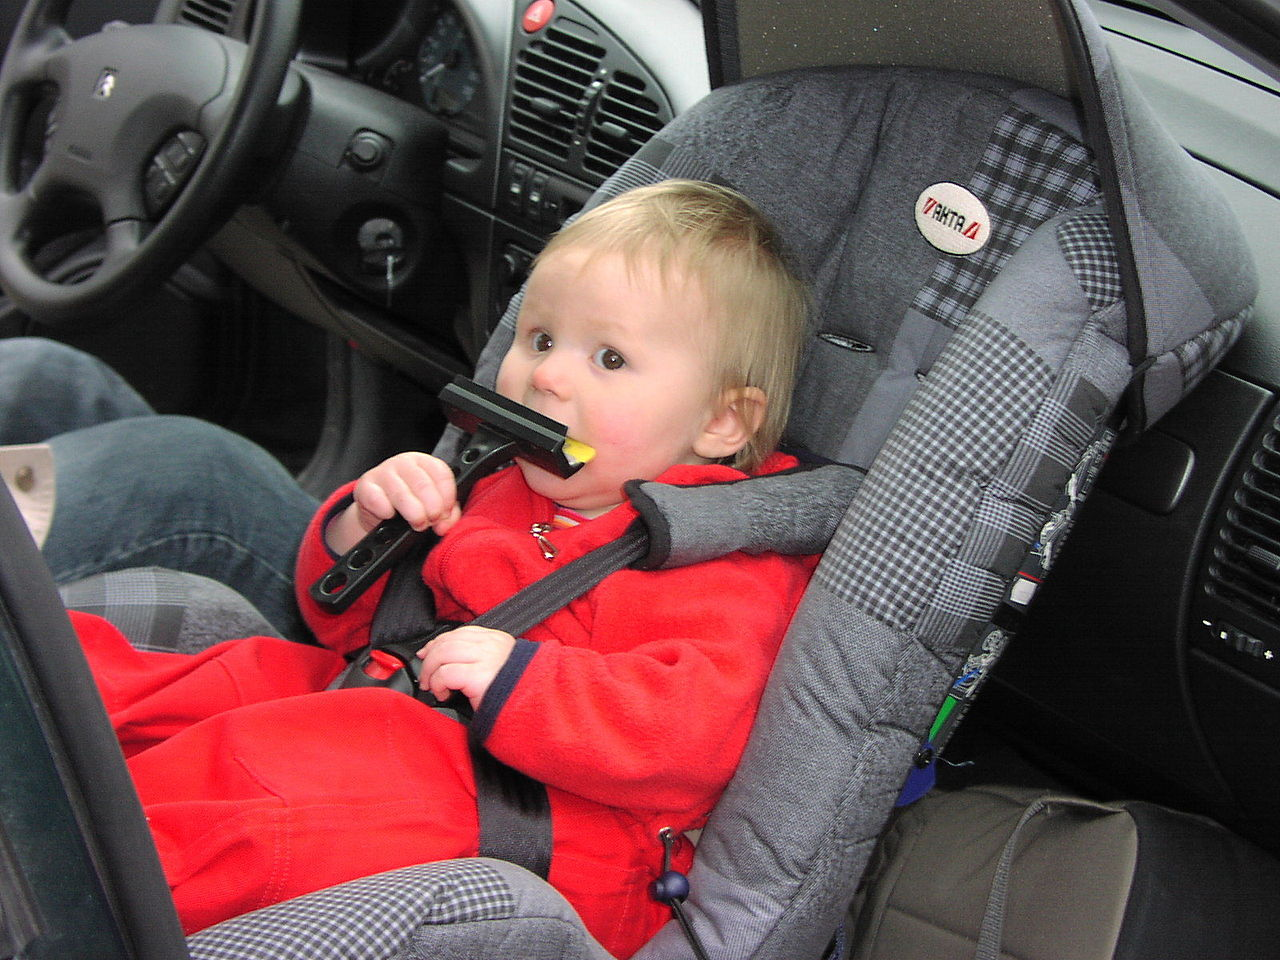 Child Car Seats Defect Break Accident